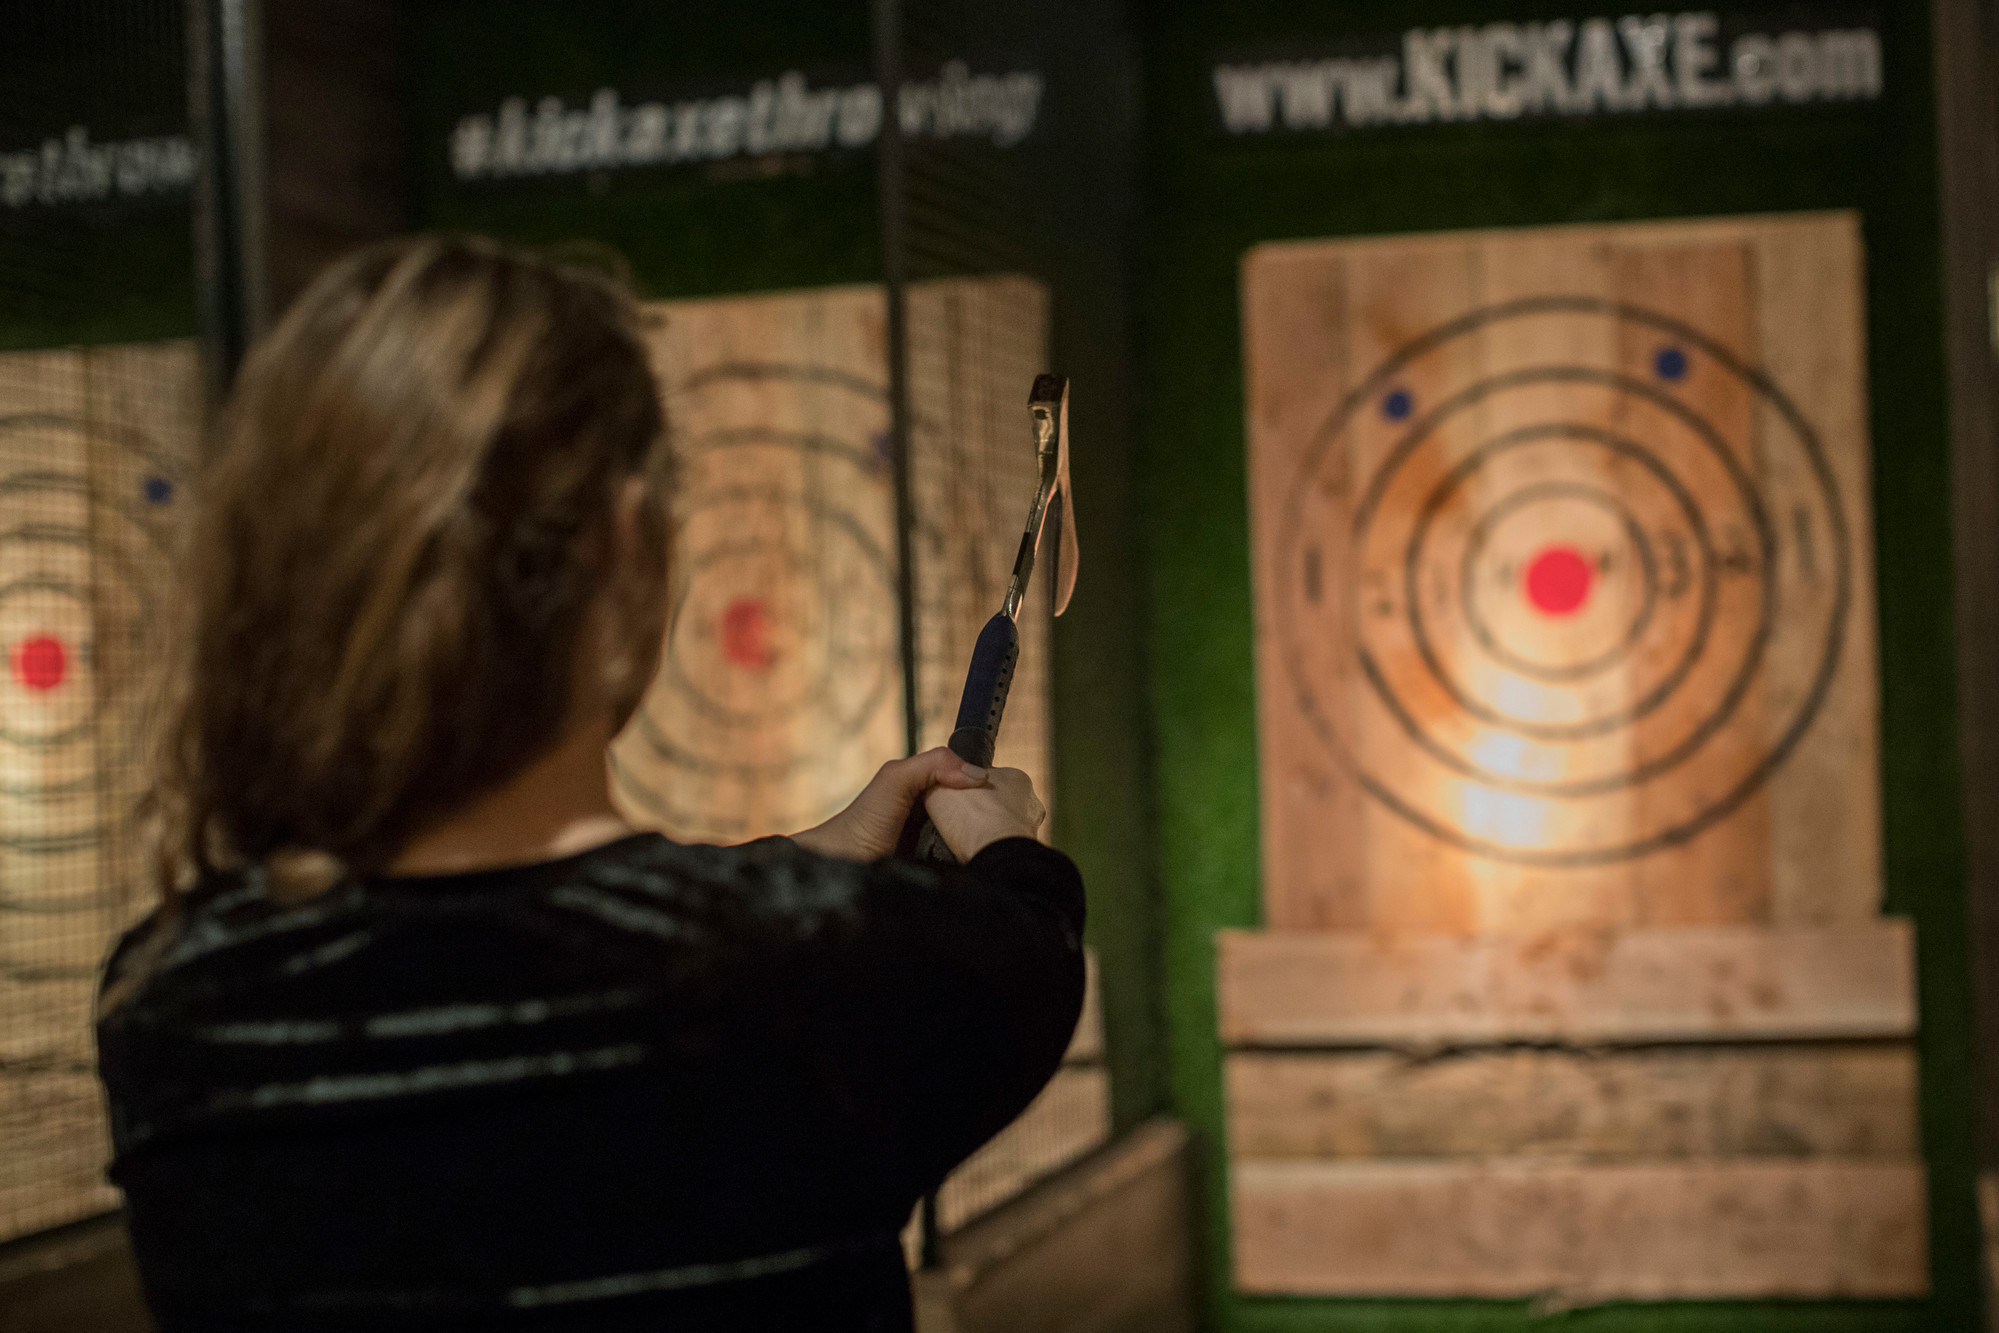 A contestant prepares to throw a hatchet at a wooden bull's-eye March 3 at the Kick Axe Throwing venue in the Brooklyn borough of New York. Ax throwing is a growing sport that some enthusiasts hope will take off the way bowling did in the last century.